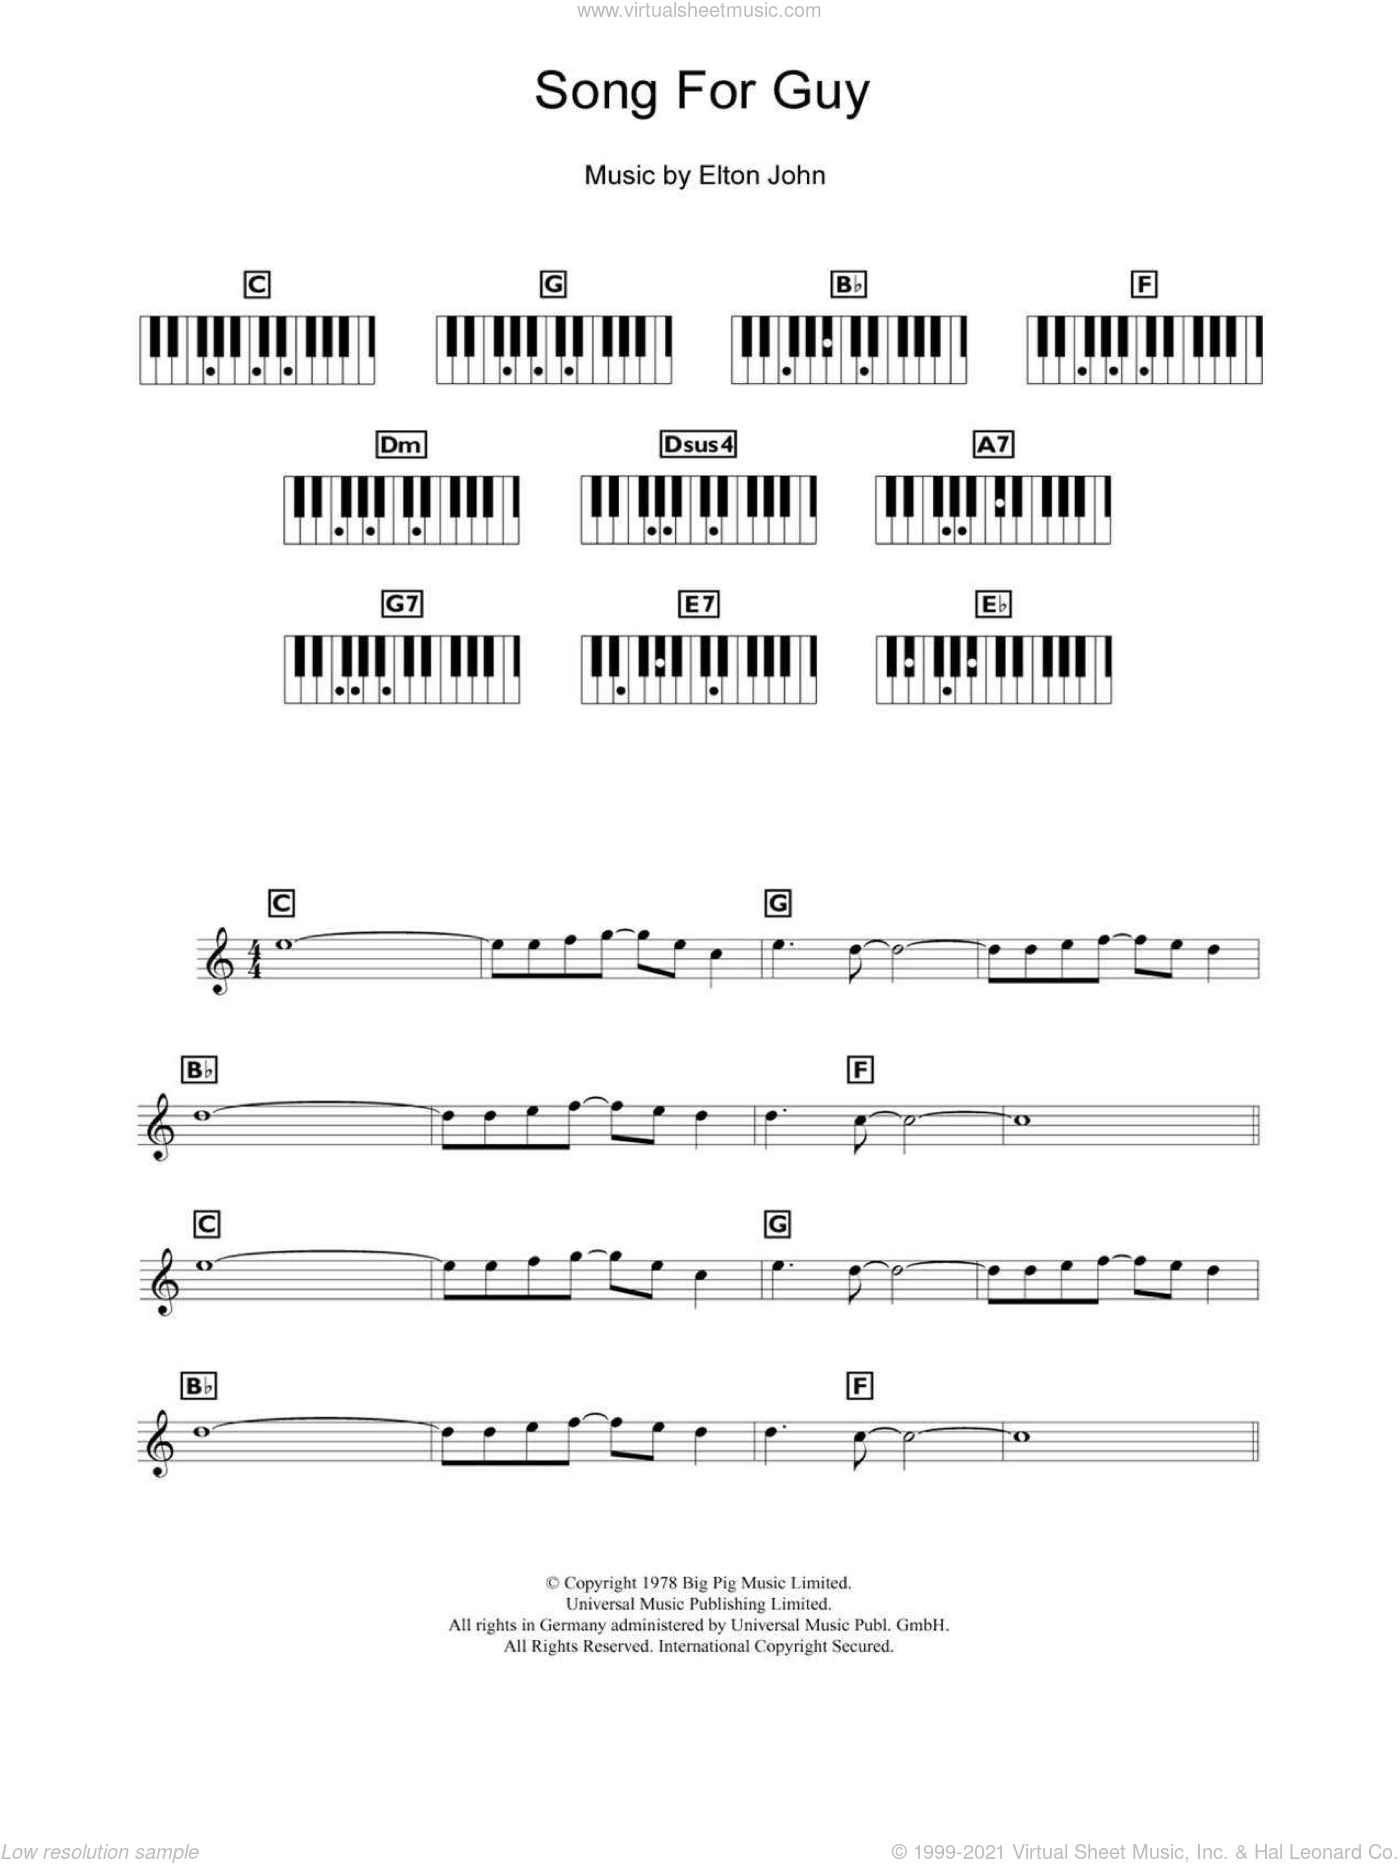 Song For Guy sheet music for piano solo (chords, lyrics, melody) by Elton John